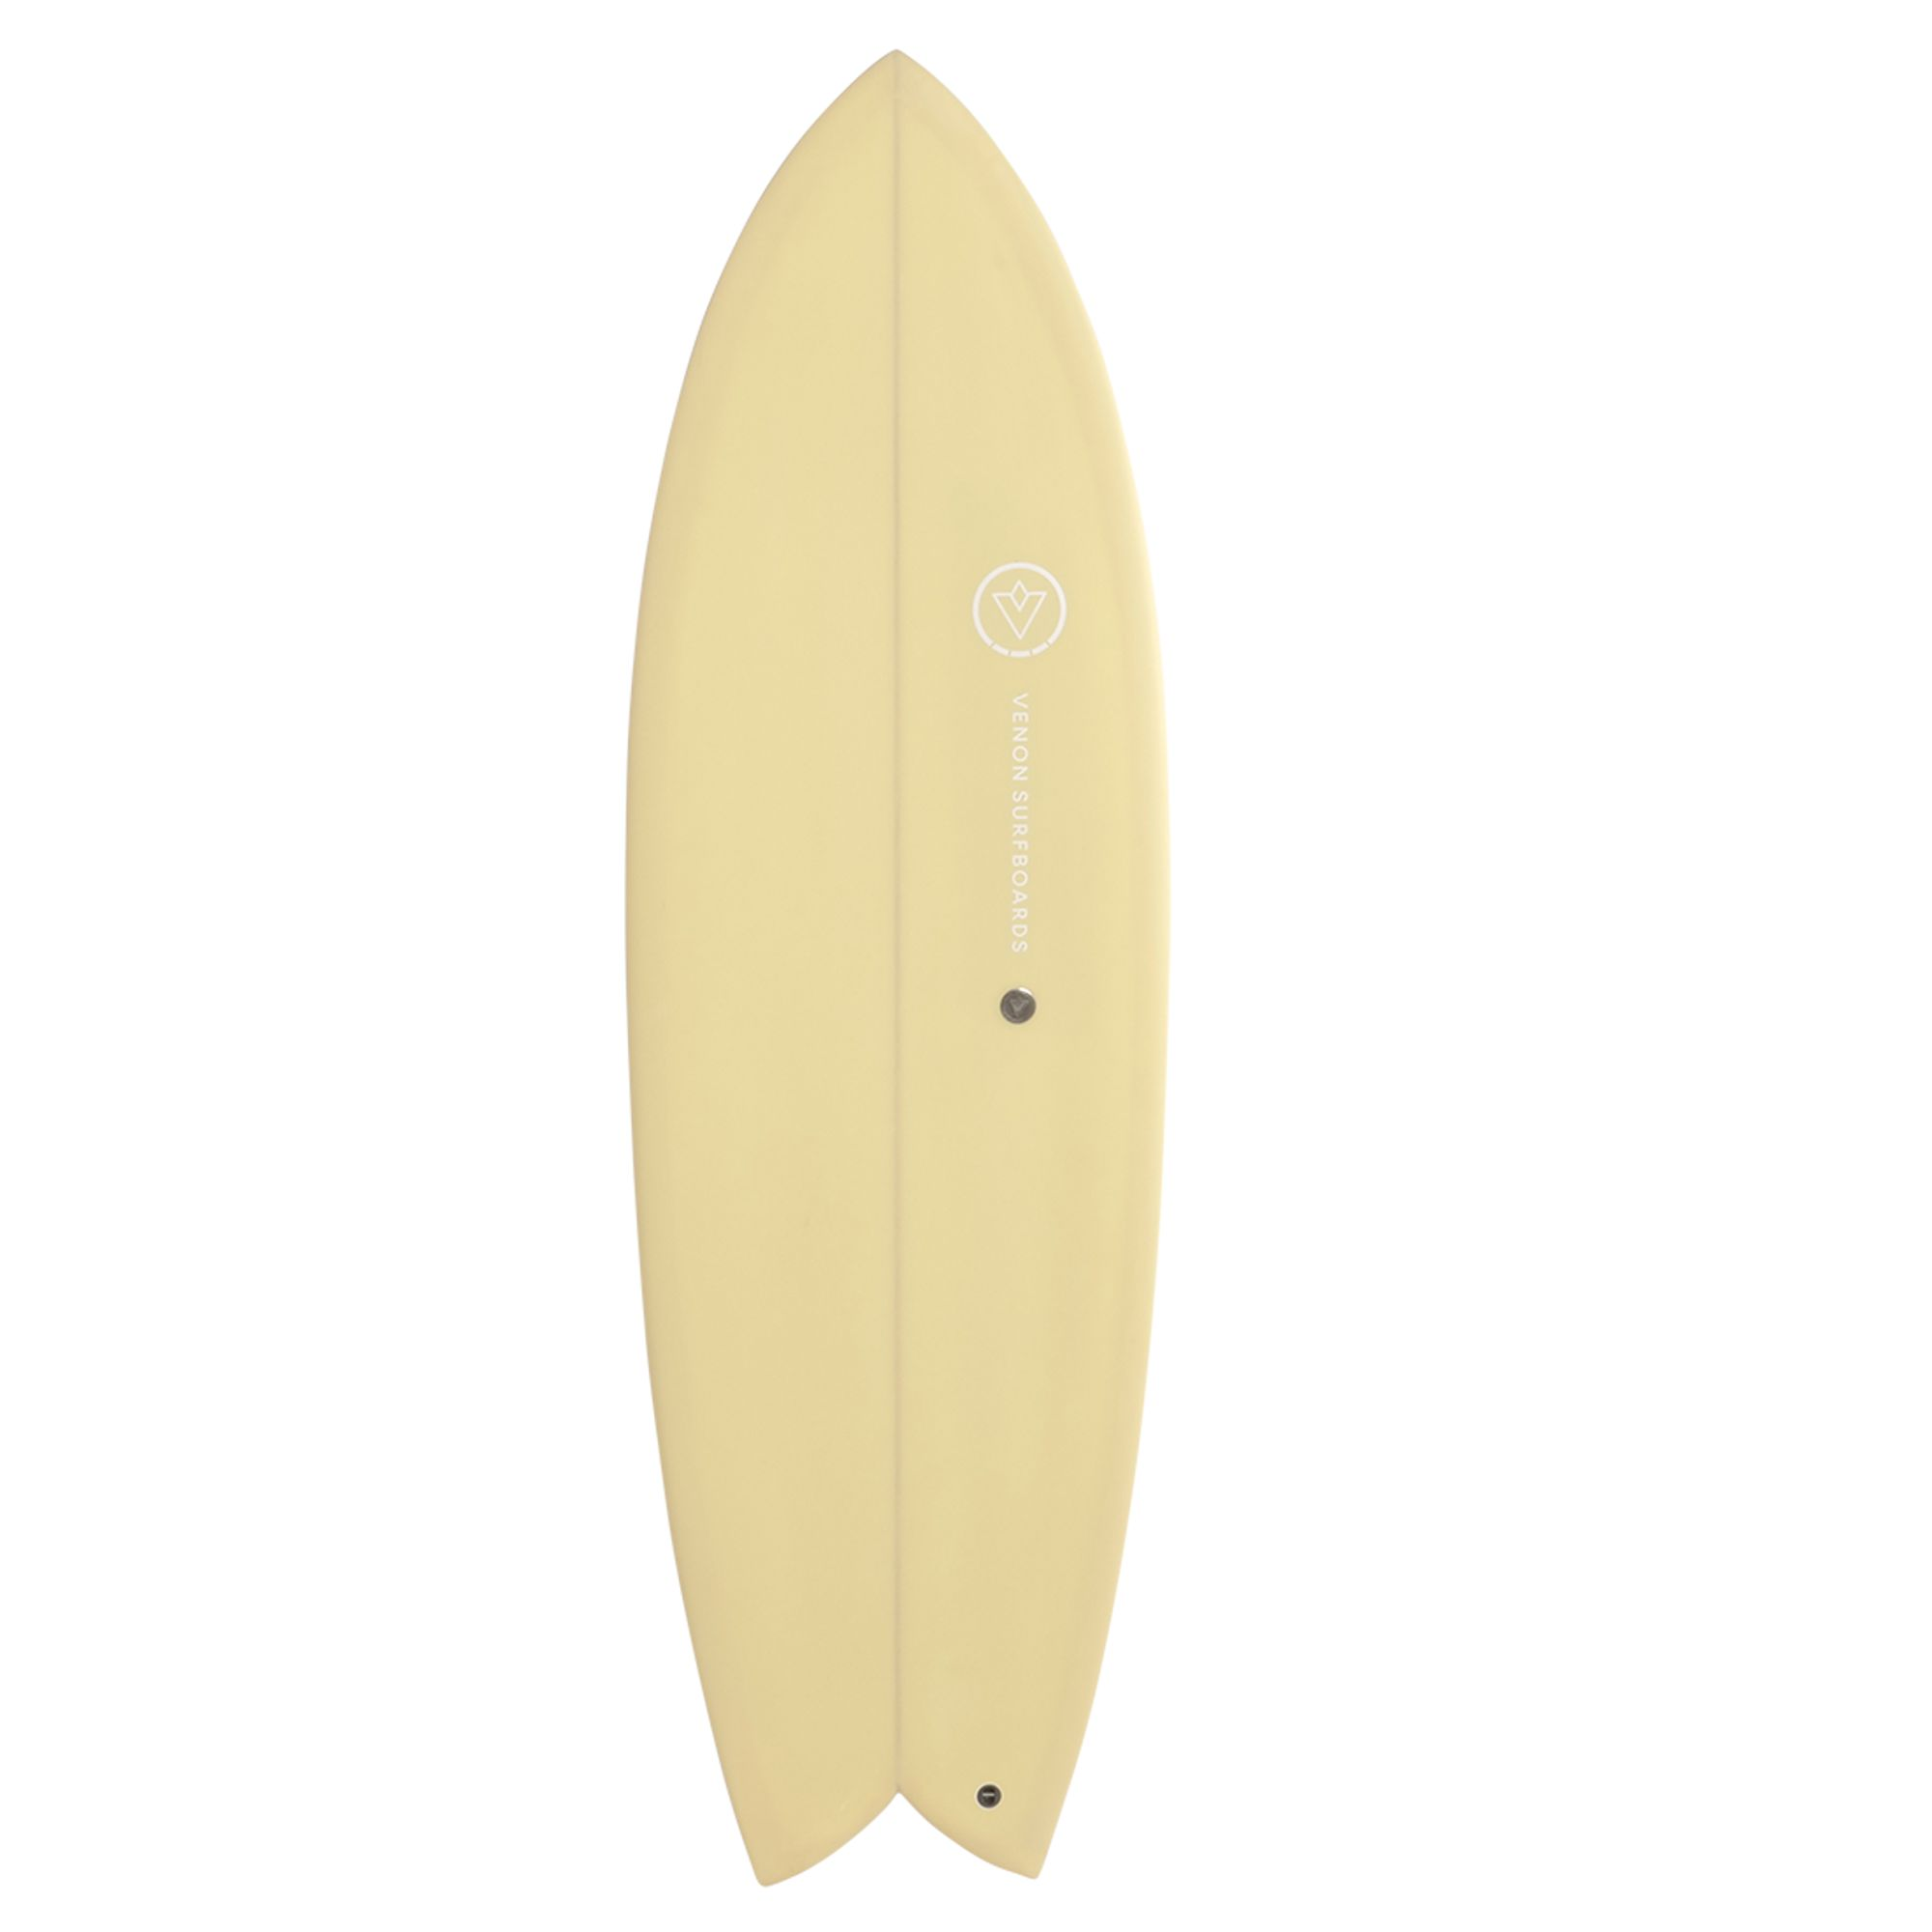 Surfboard VENON Node 5.9 Twinfin Retro Fish pastel